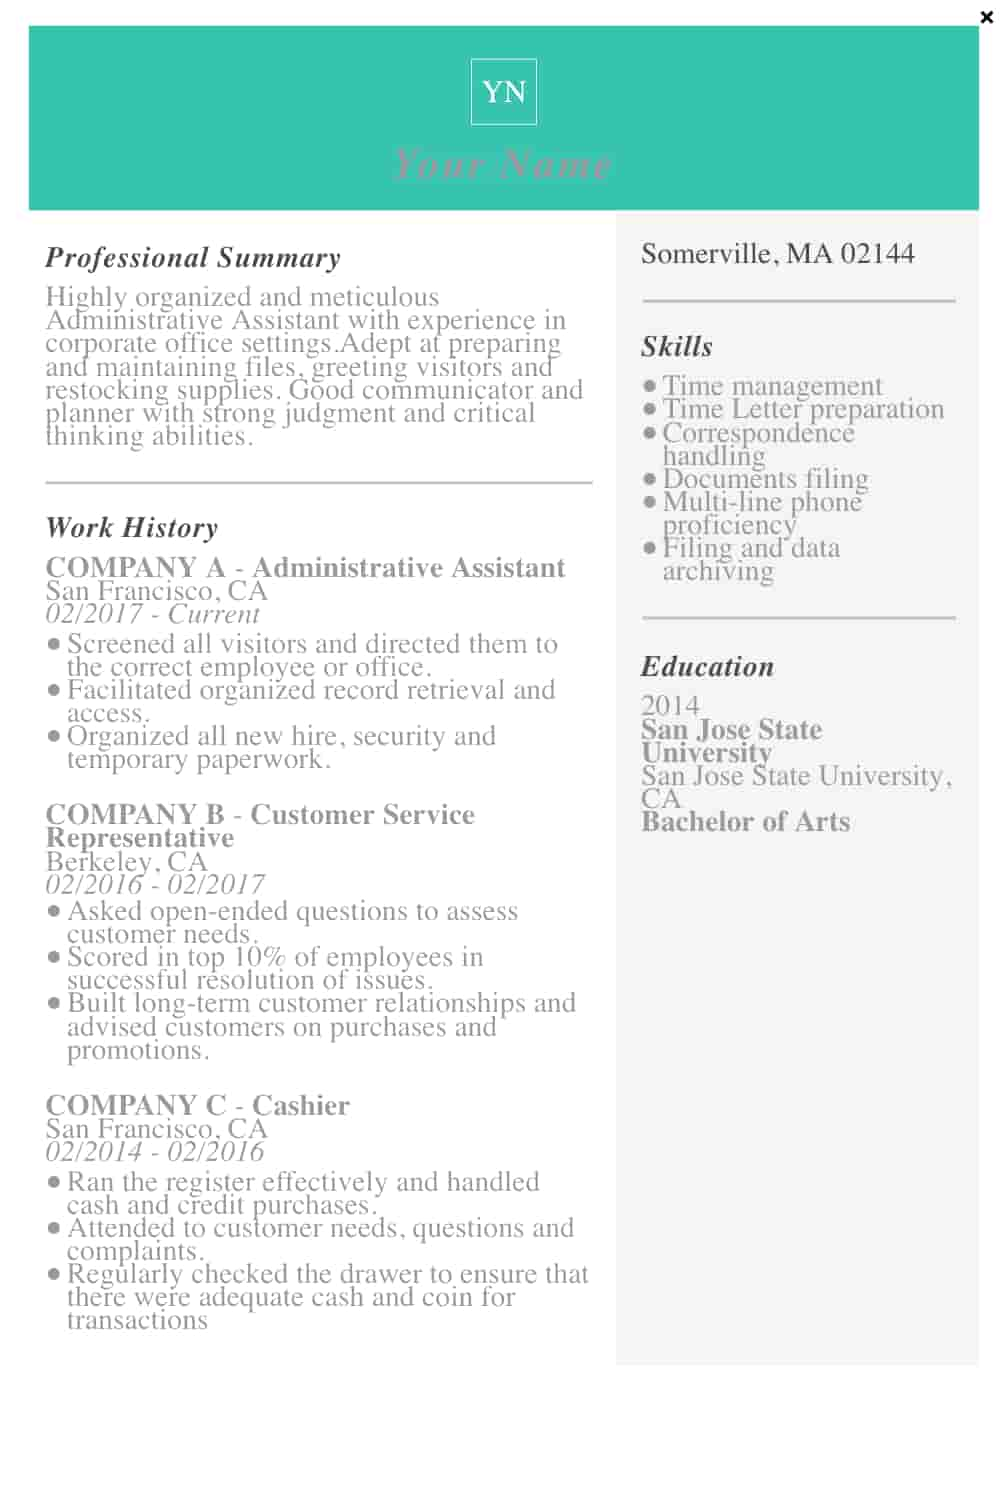 free resume templates for microsoft word to make your own skills template screen shot at Resume Skills Resume Template Word